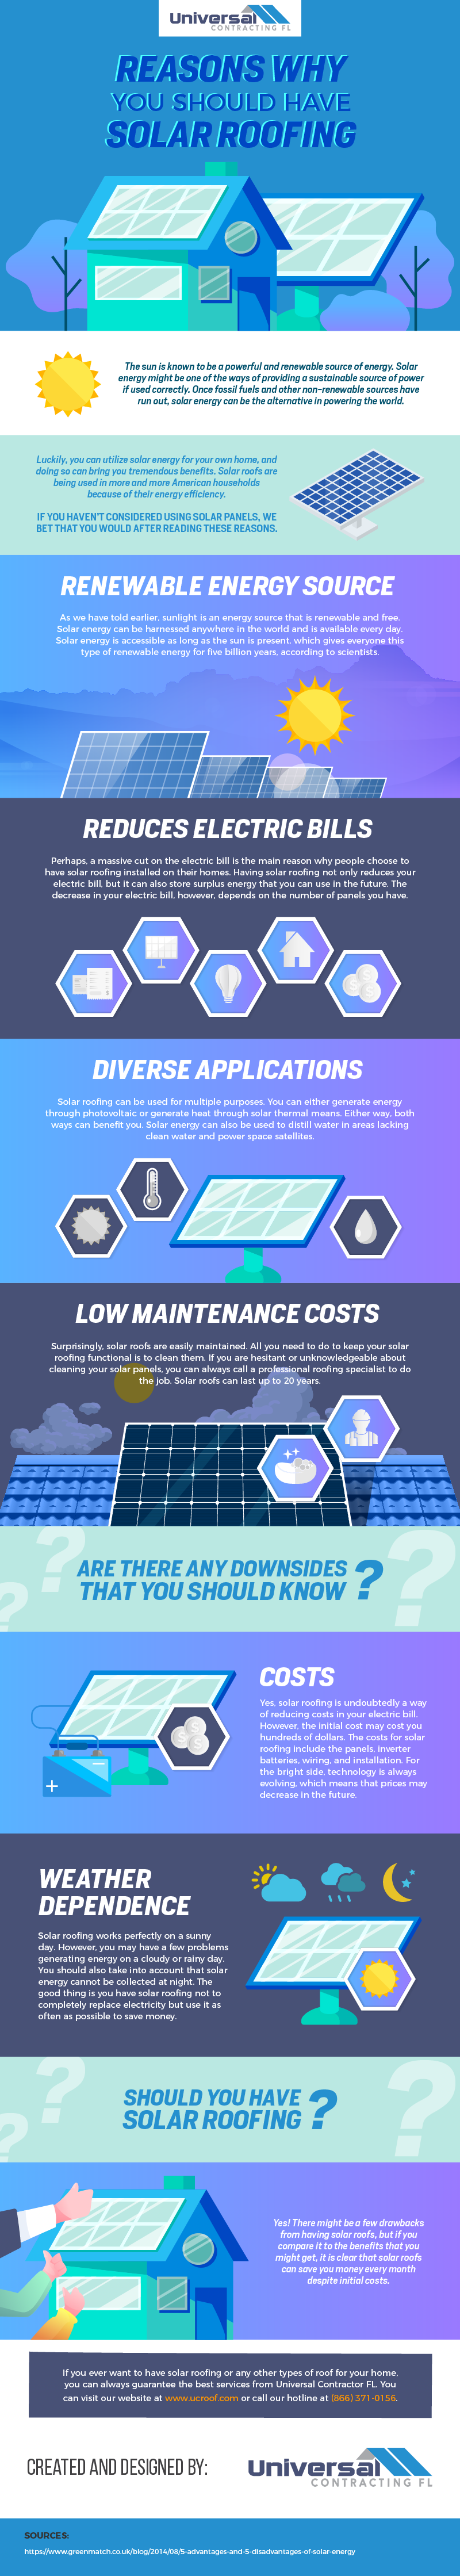 Why You Should Have Solar Roofing? #infographic